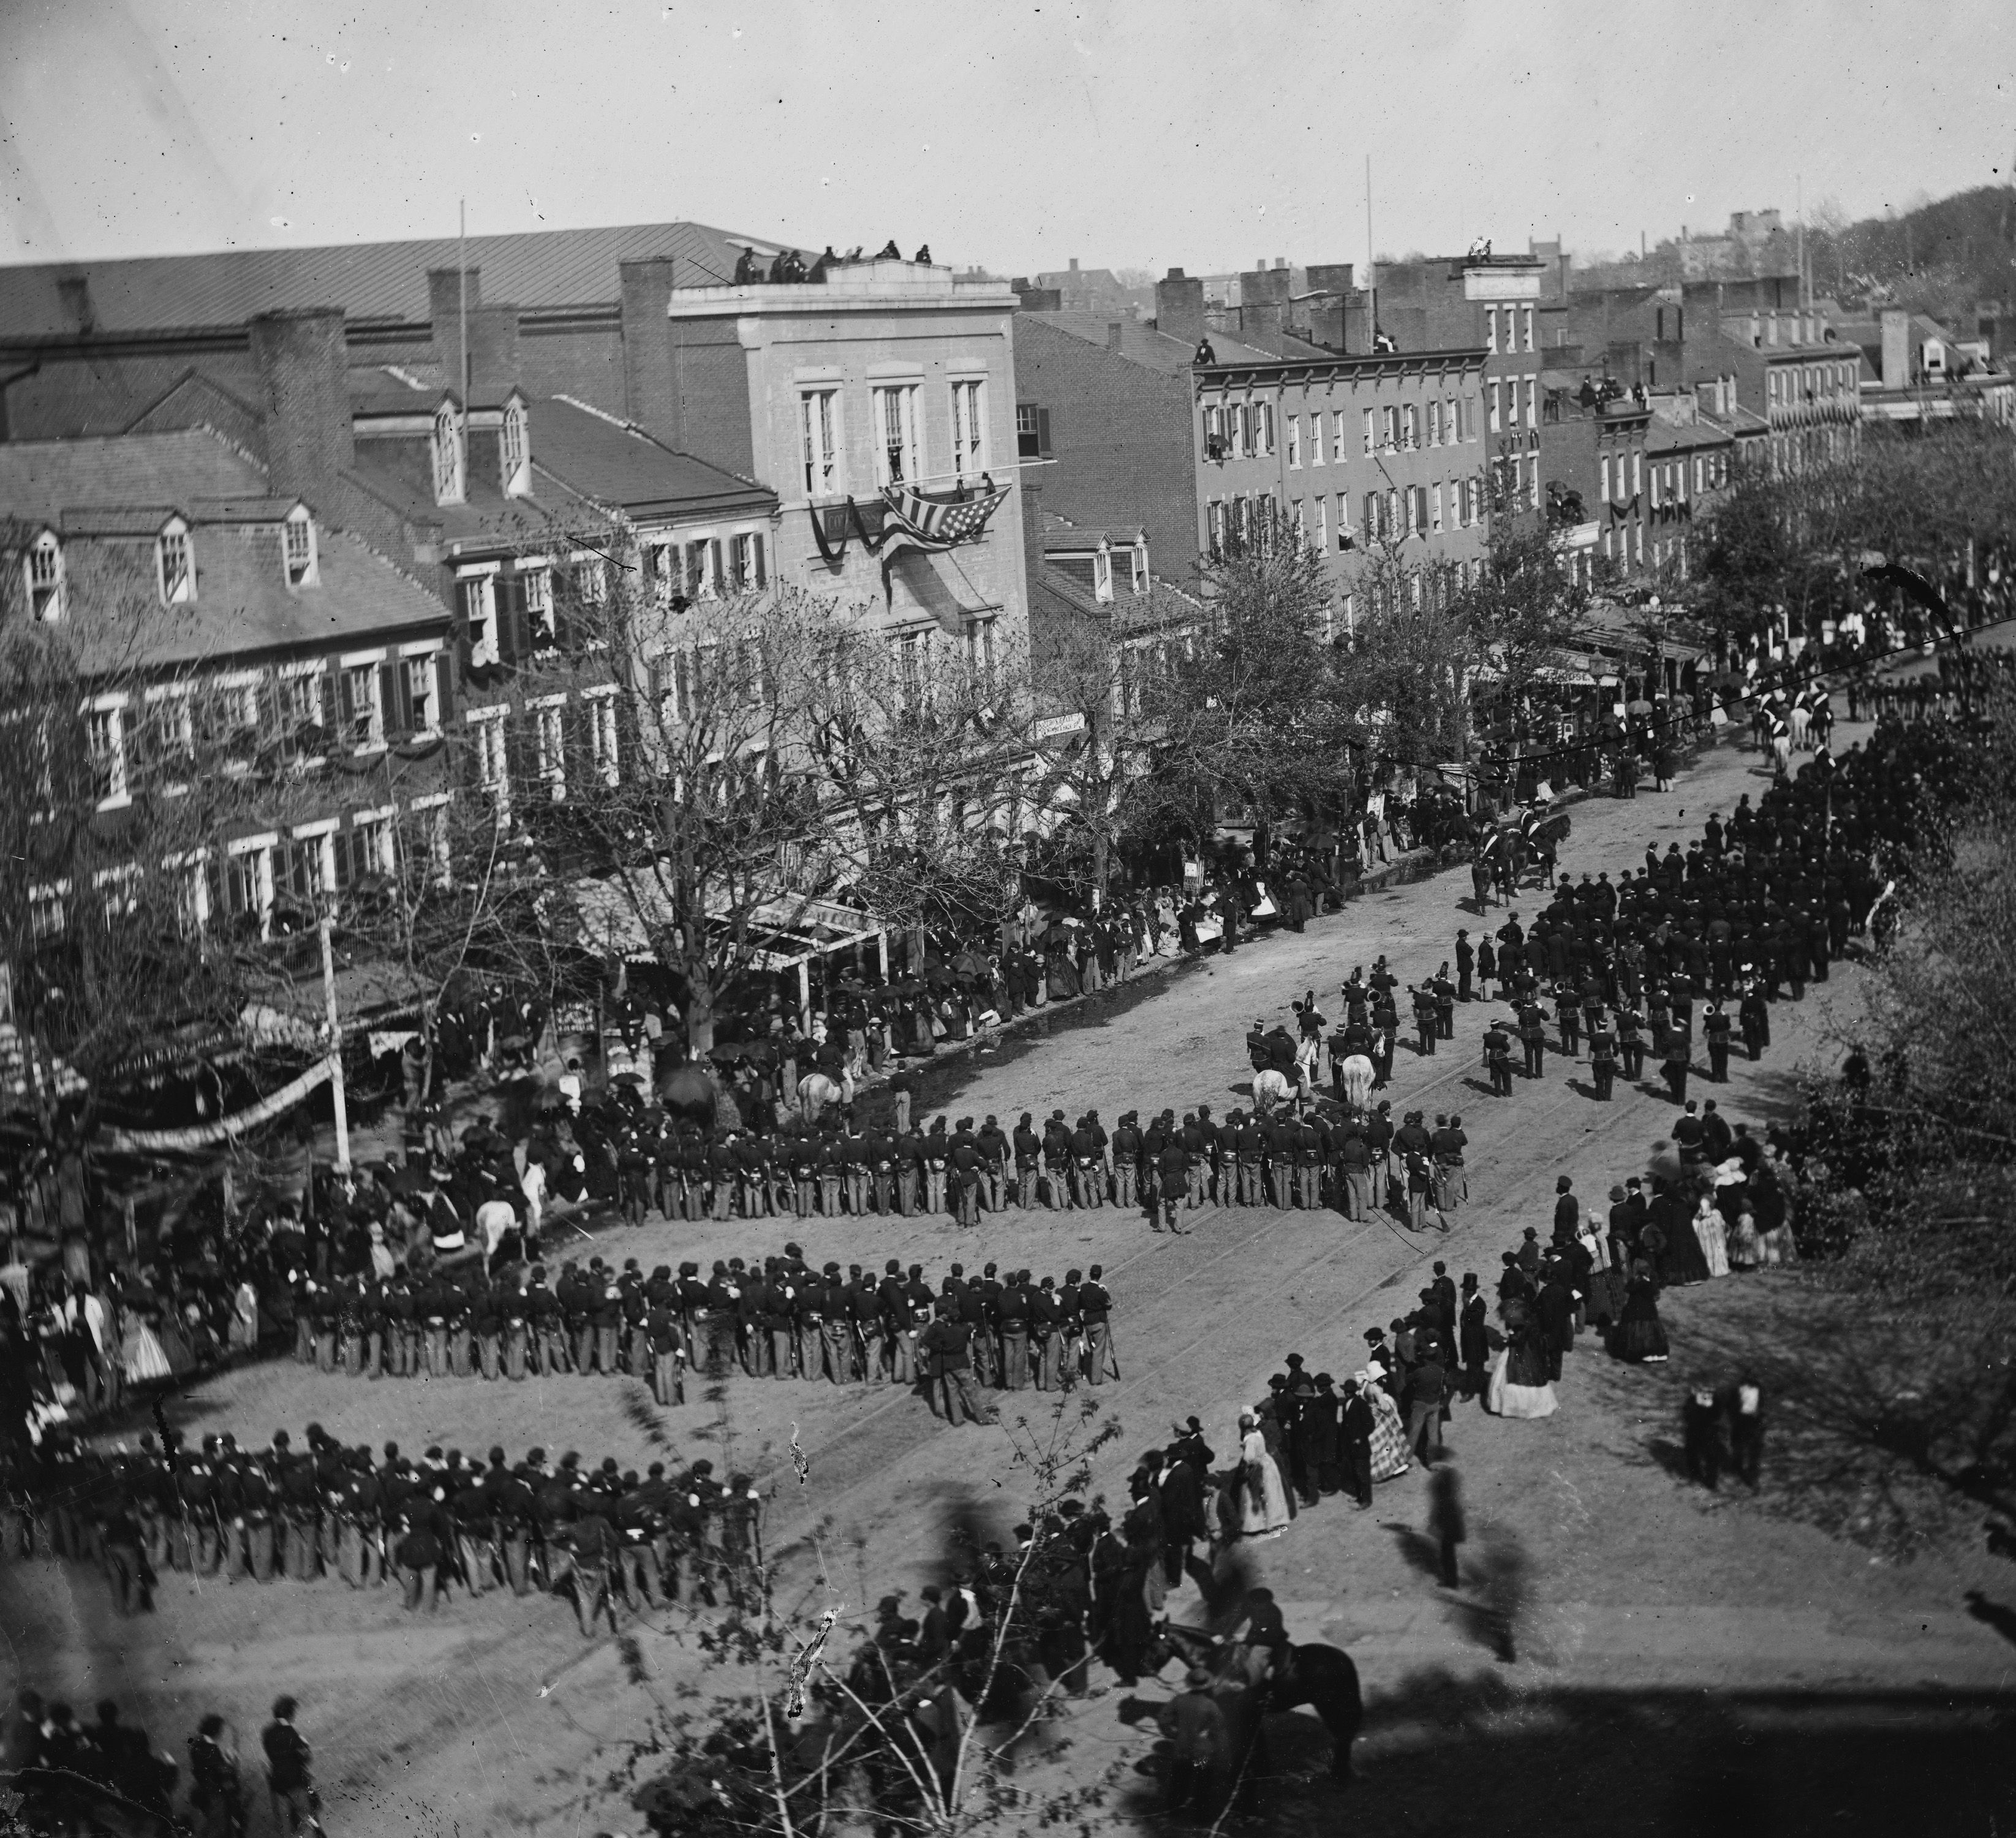 PRESIDENT LINCOLN FUNERAL REMOVAL OF THE BODY 1865 FUNERAL CAR COFFIN CASKET